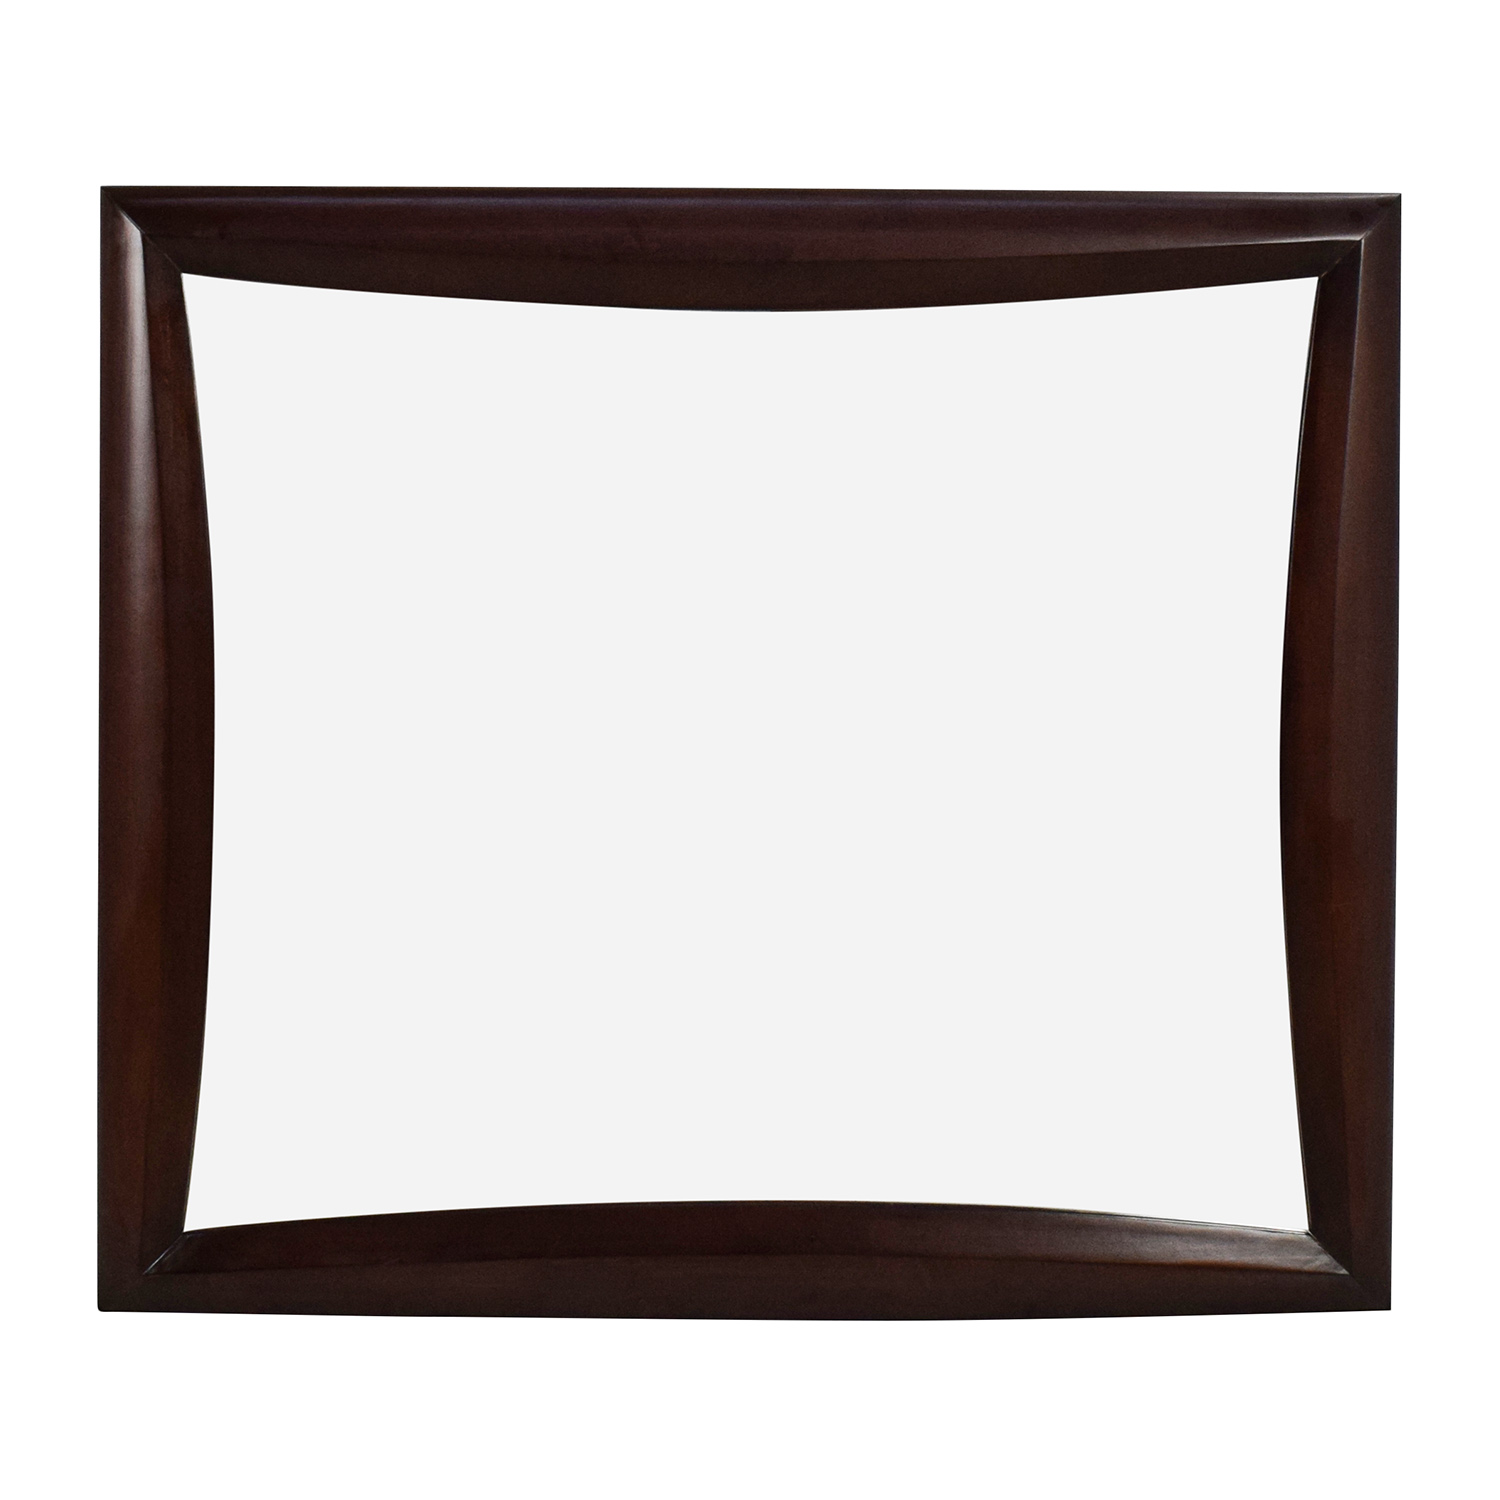 Square Curved Wooden Frame Mirror